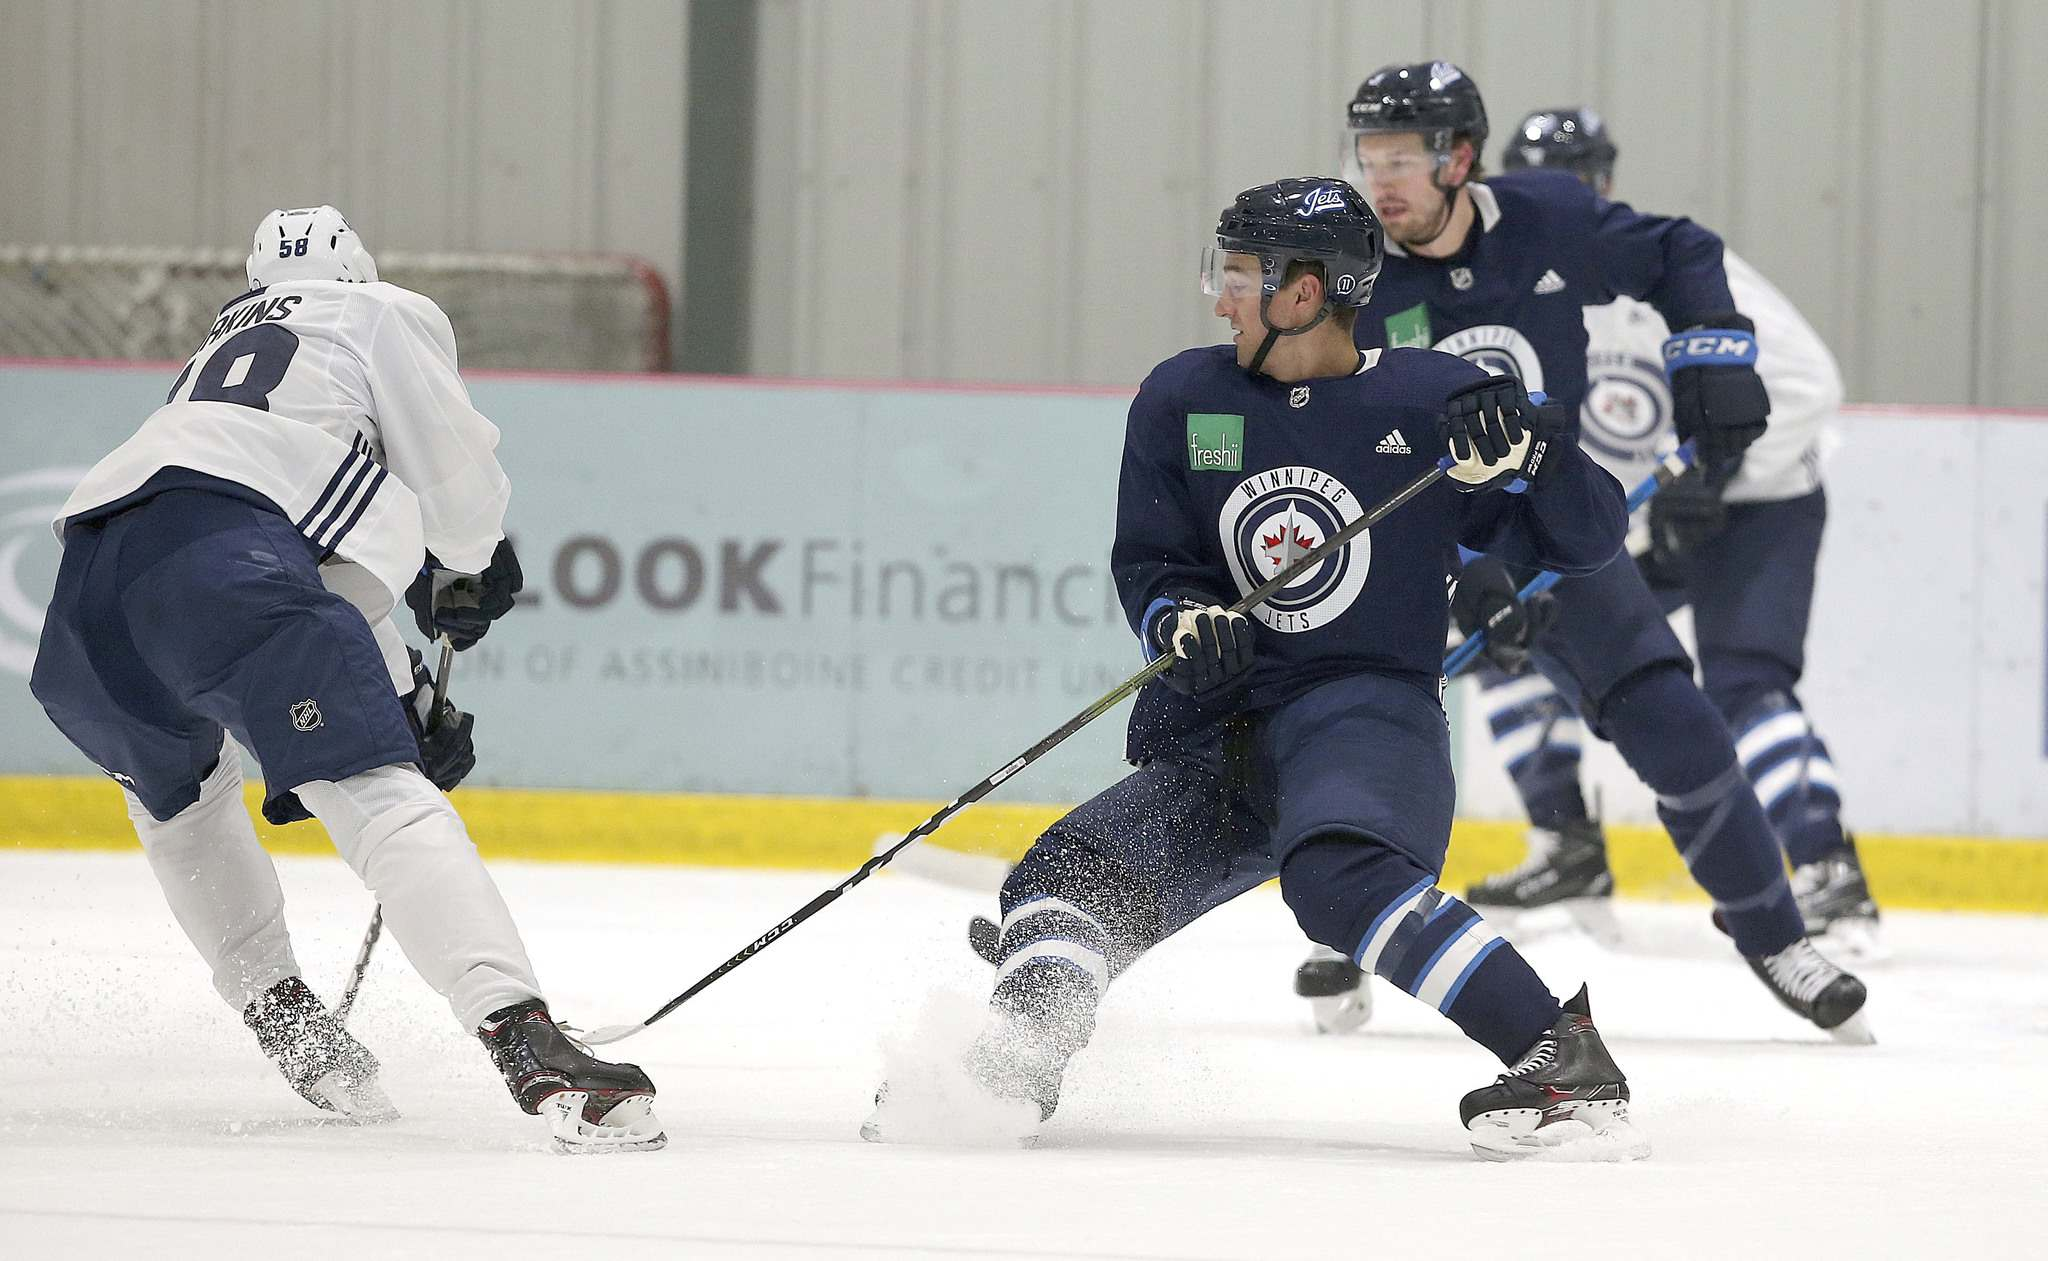 Defenceman Neal Pionk skates during Winnipeg Jets practice at the Bell MTS Iceplex. (Jason Halstead / Winnipeg Free Press)